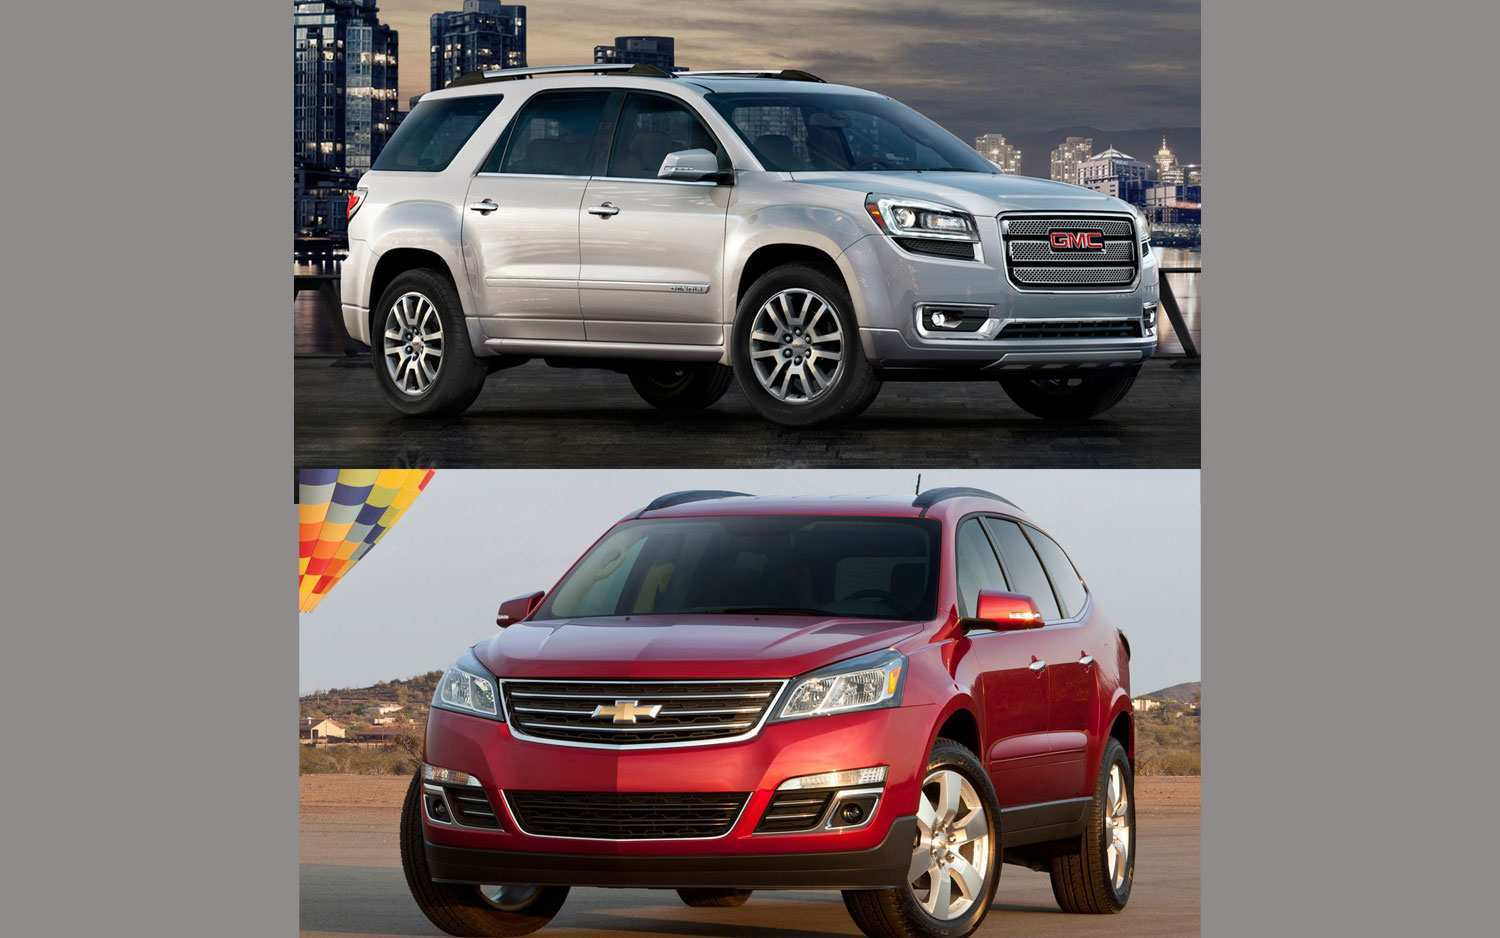 88 The Best 2020 GMC Acadia Vs Chevy Traverse Concept